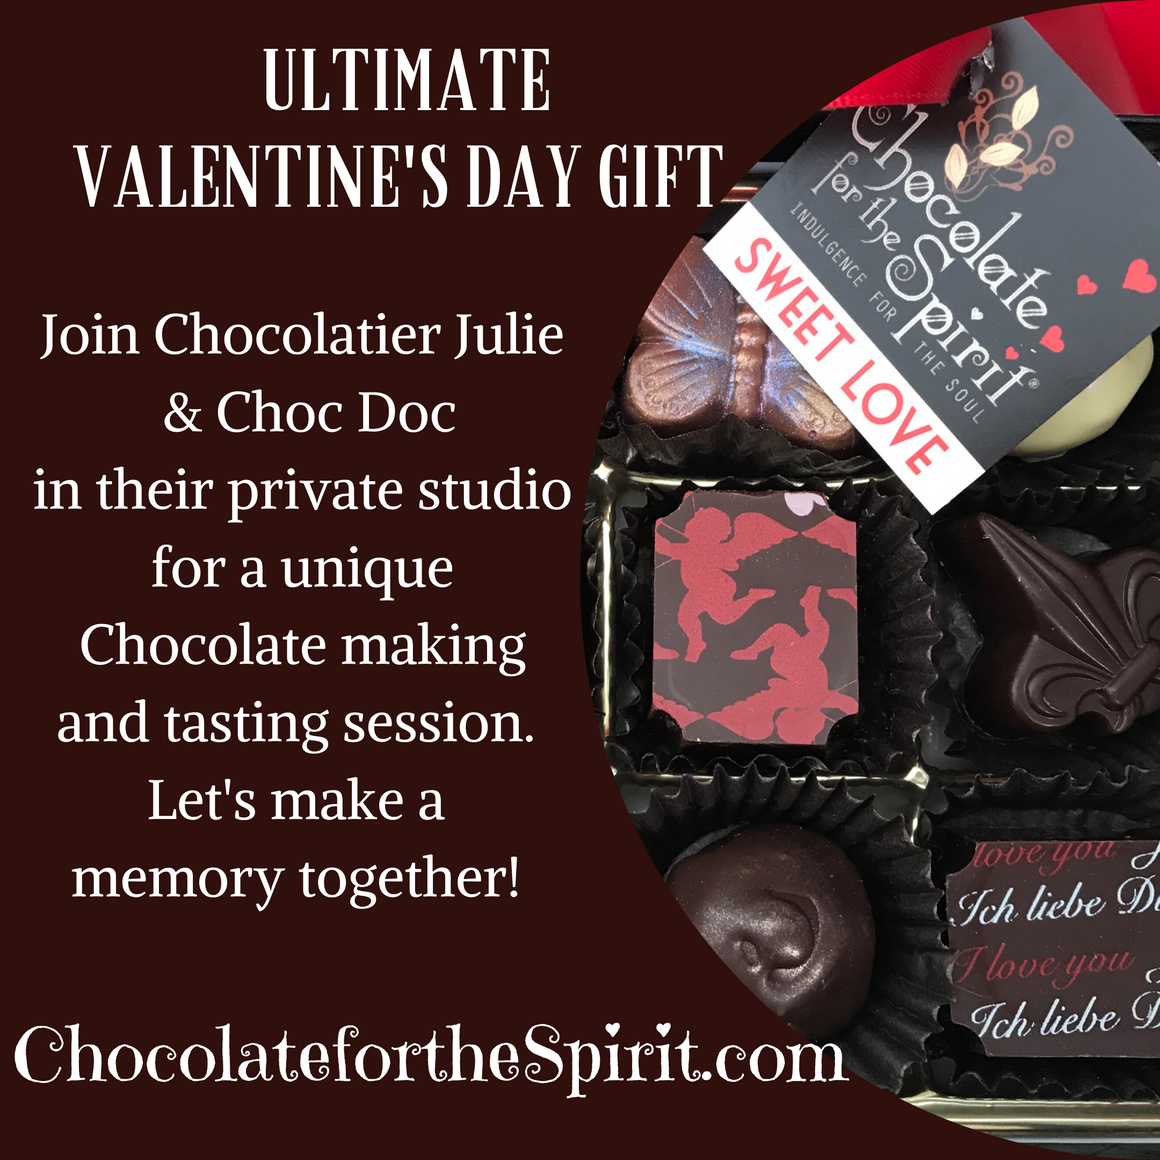 February 14th 7:00pm - 9:30pm- Ultimate Valentine's Day Gift - Chocolate Making and Guided Tasting at our studio in Shelbyville, IN